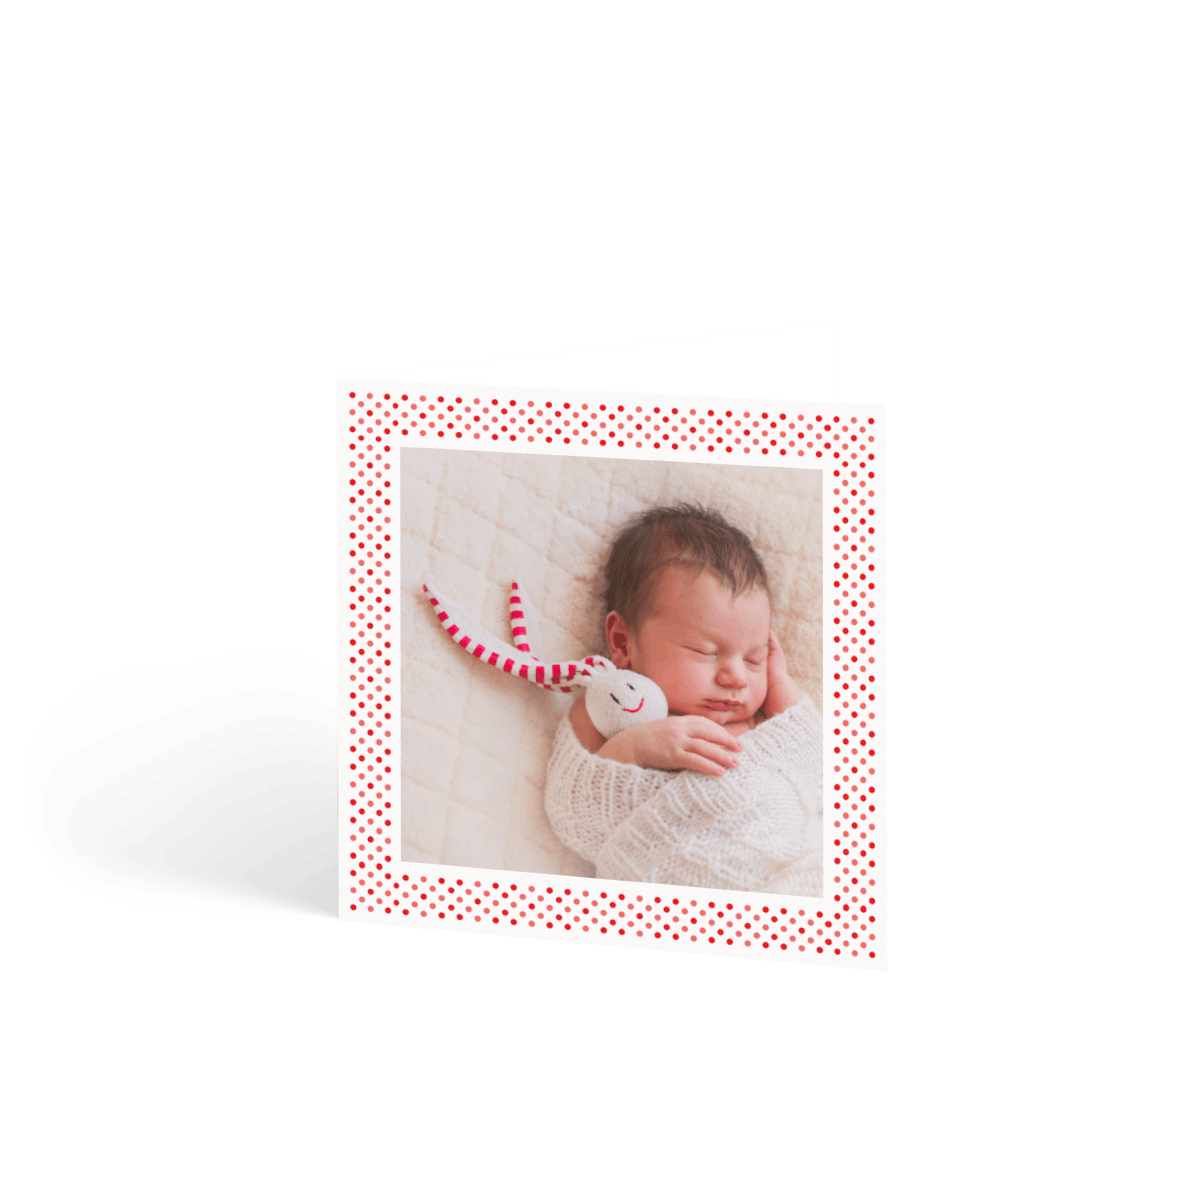 Https%3a%2f%2fwww.papier.com%2fproduct image%2f2588%2f16%2fdotty red border 713 vorderseite 1453910369.png?ixlib=rb 1.1